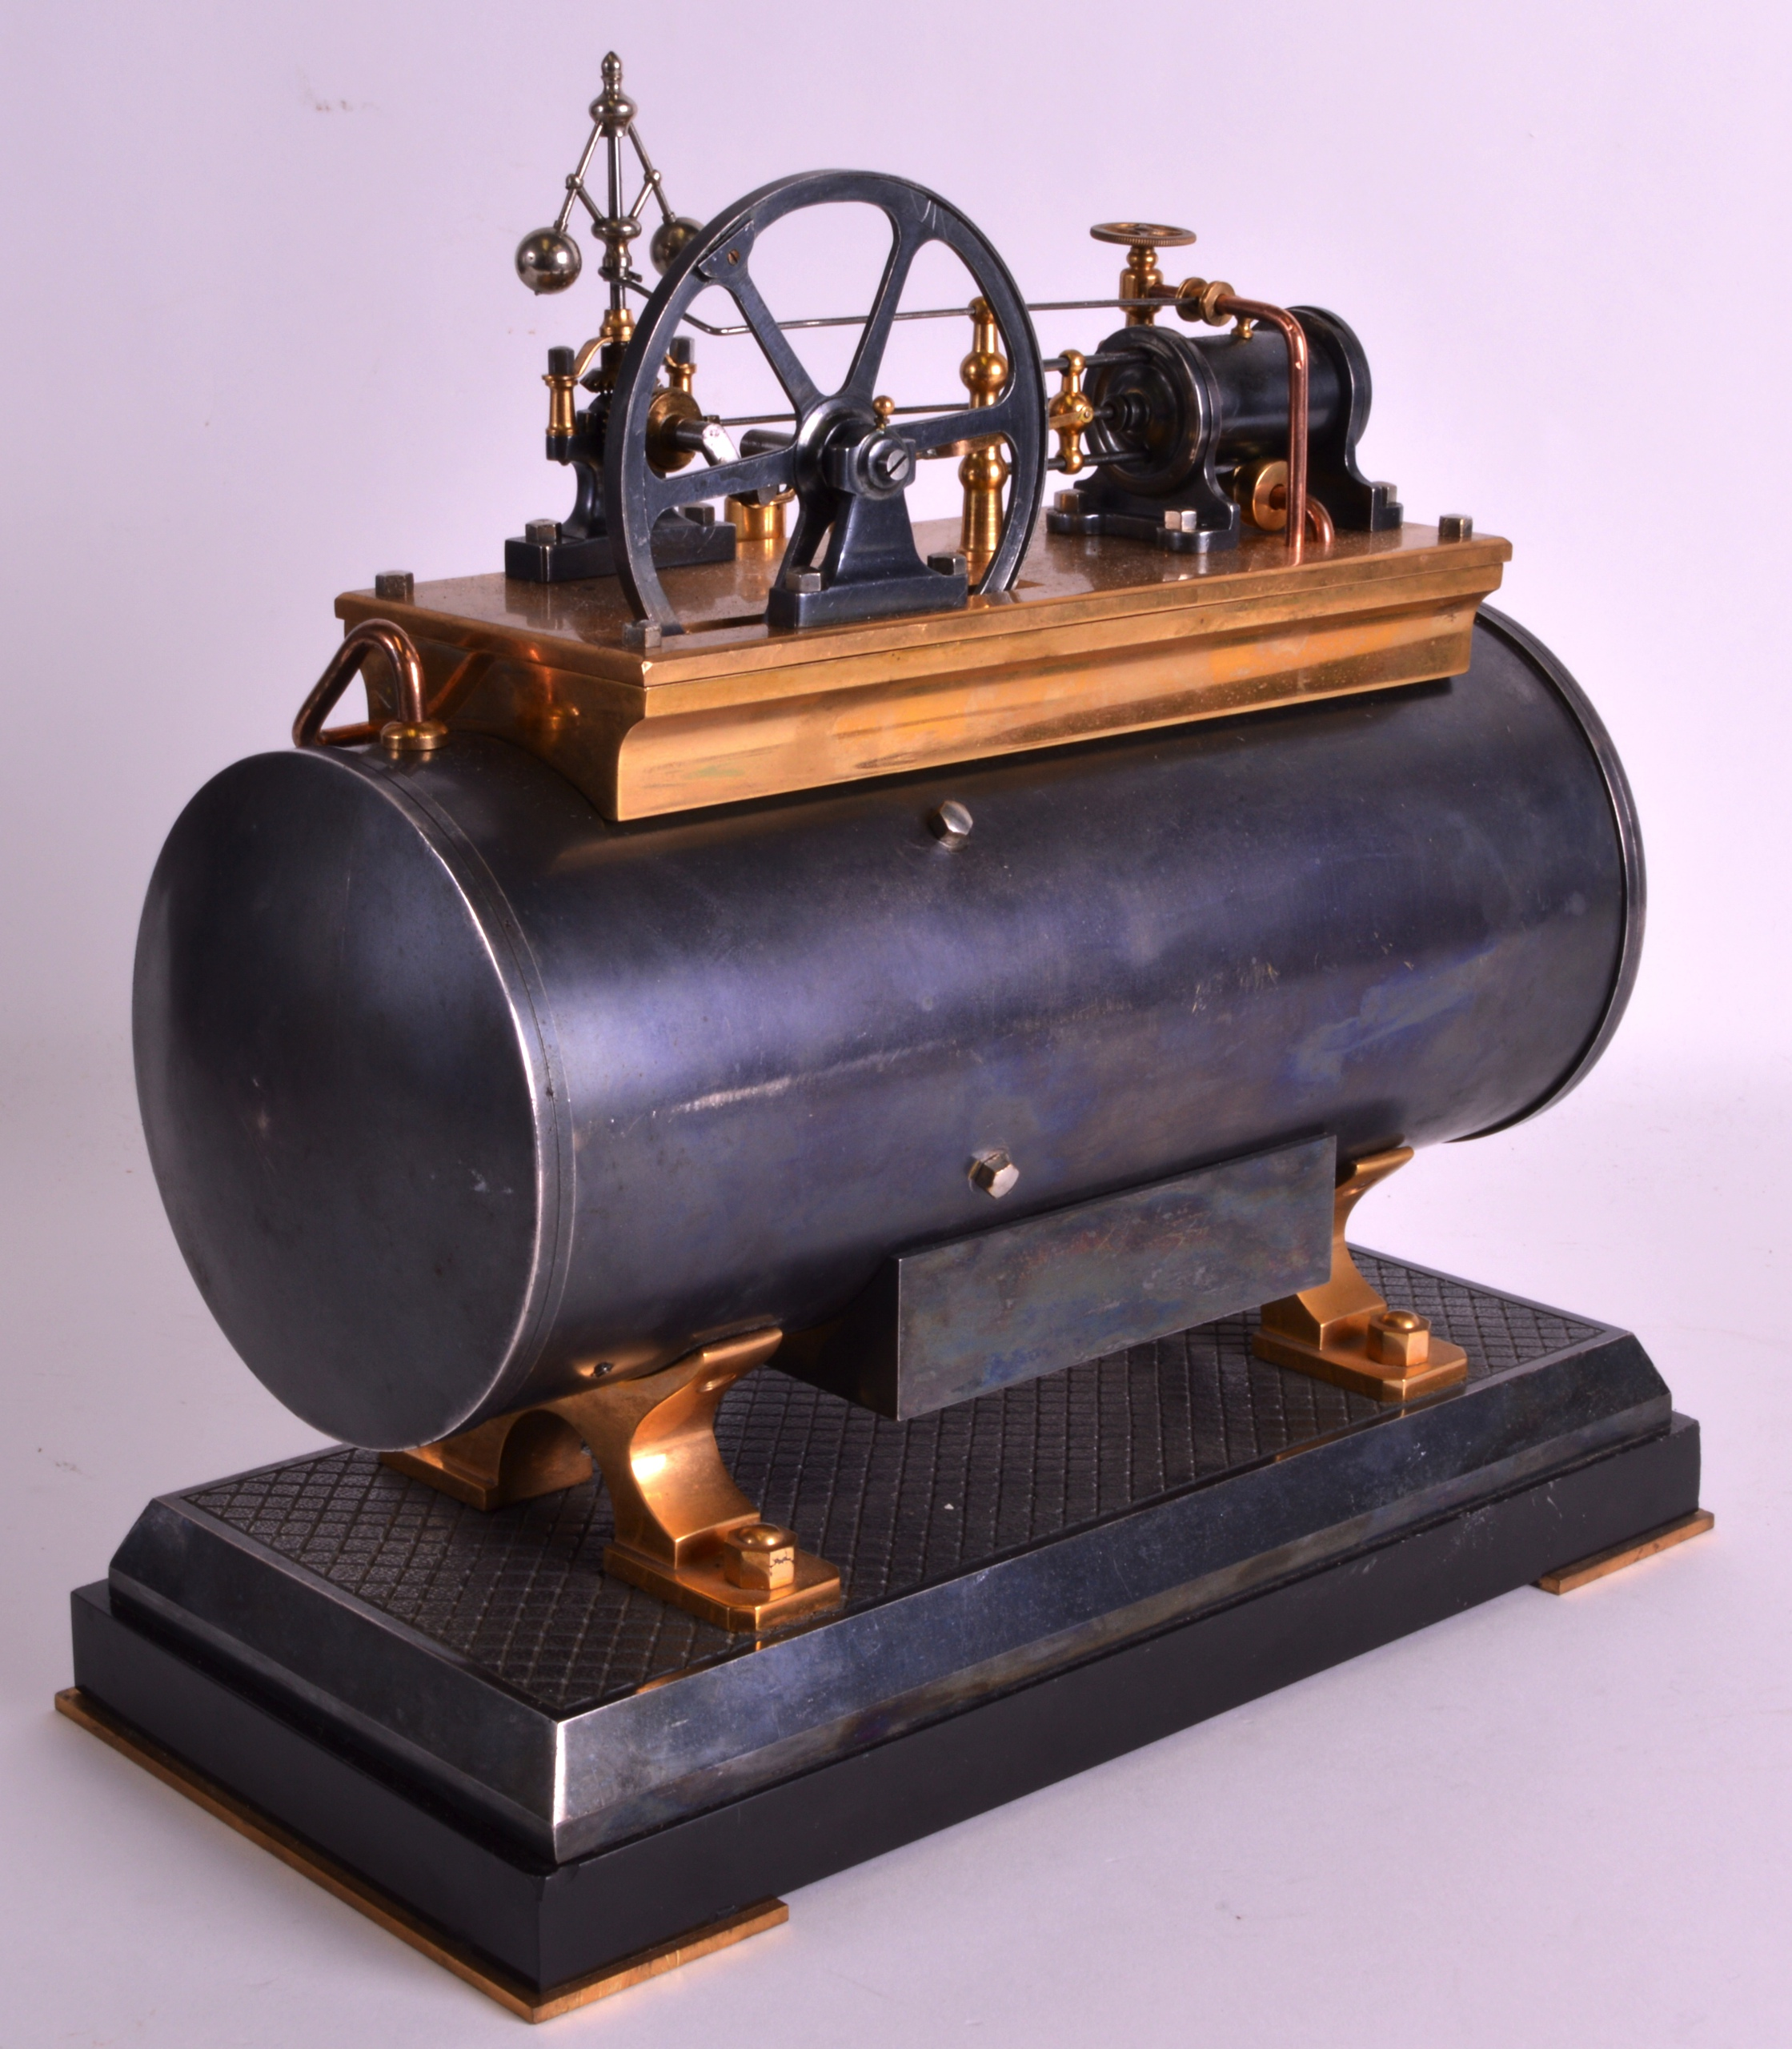 A FINE 19TH CENTURY FRENCH INDUSTRIAL BOILER ENGINE CLOCK C1880 with Roman chapters and blued - Image 4 of 7